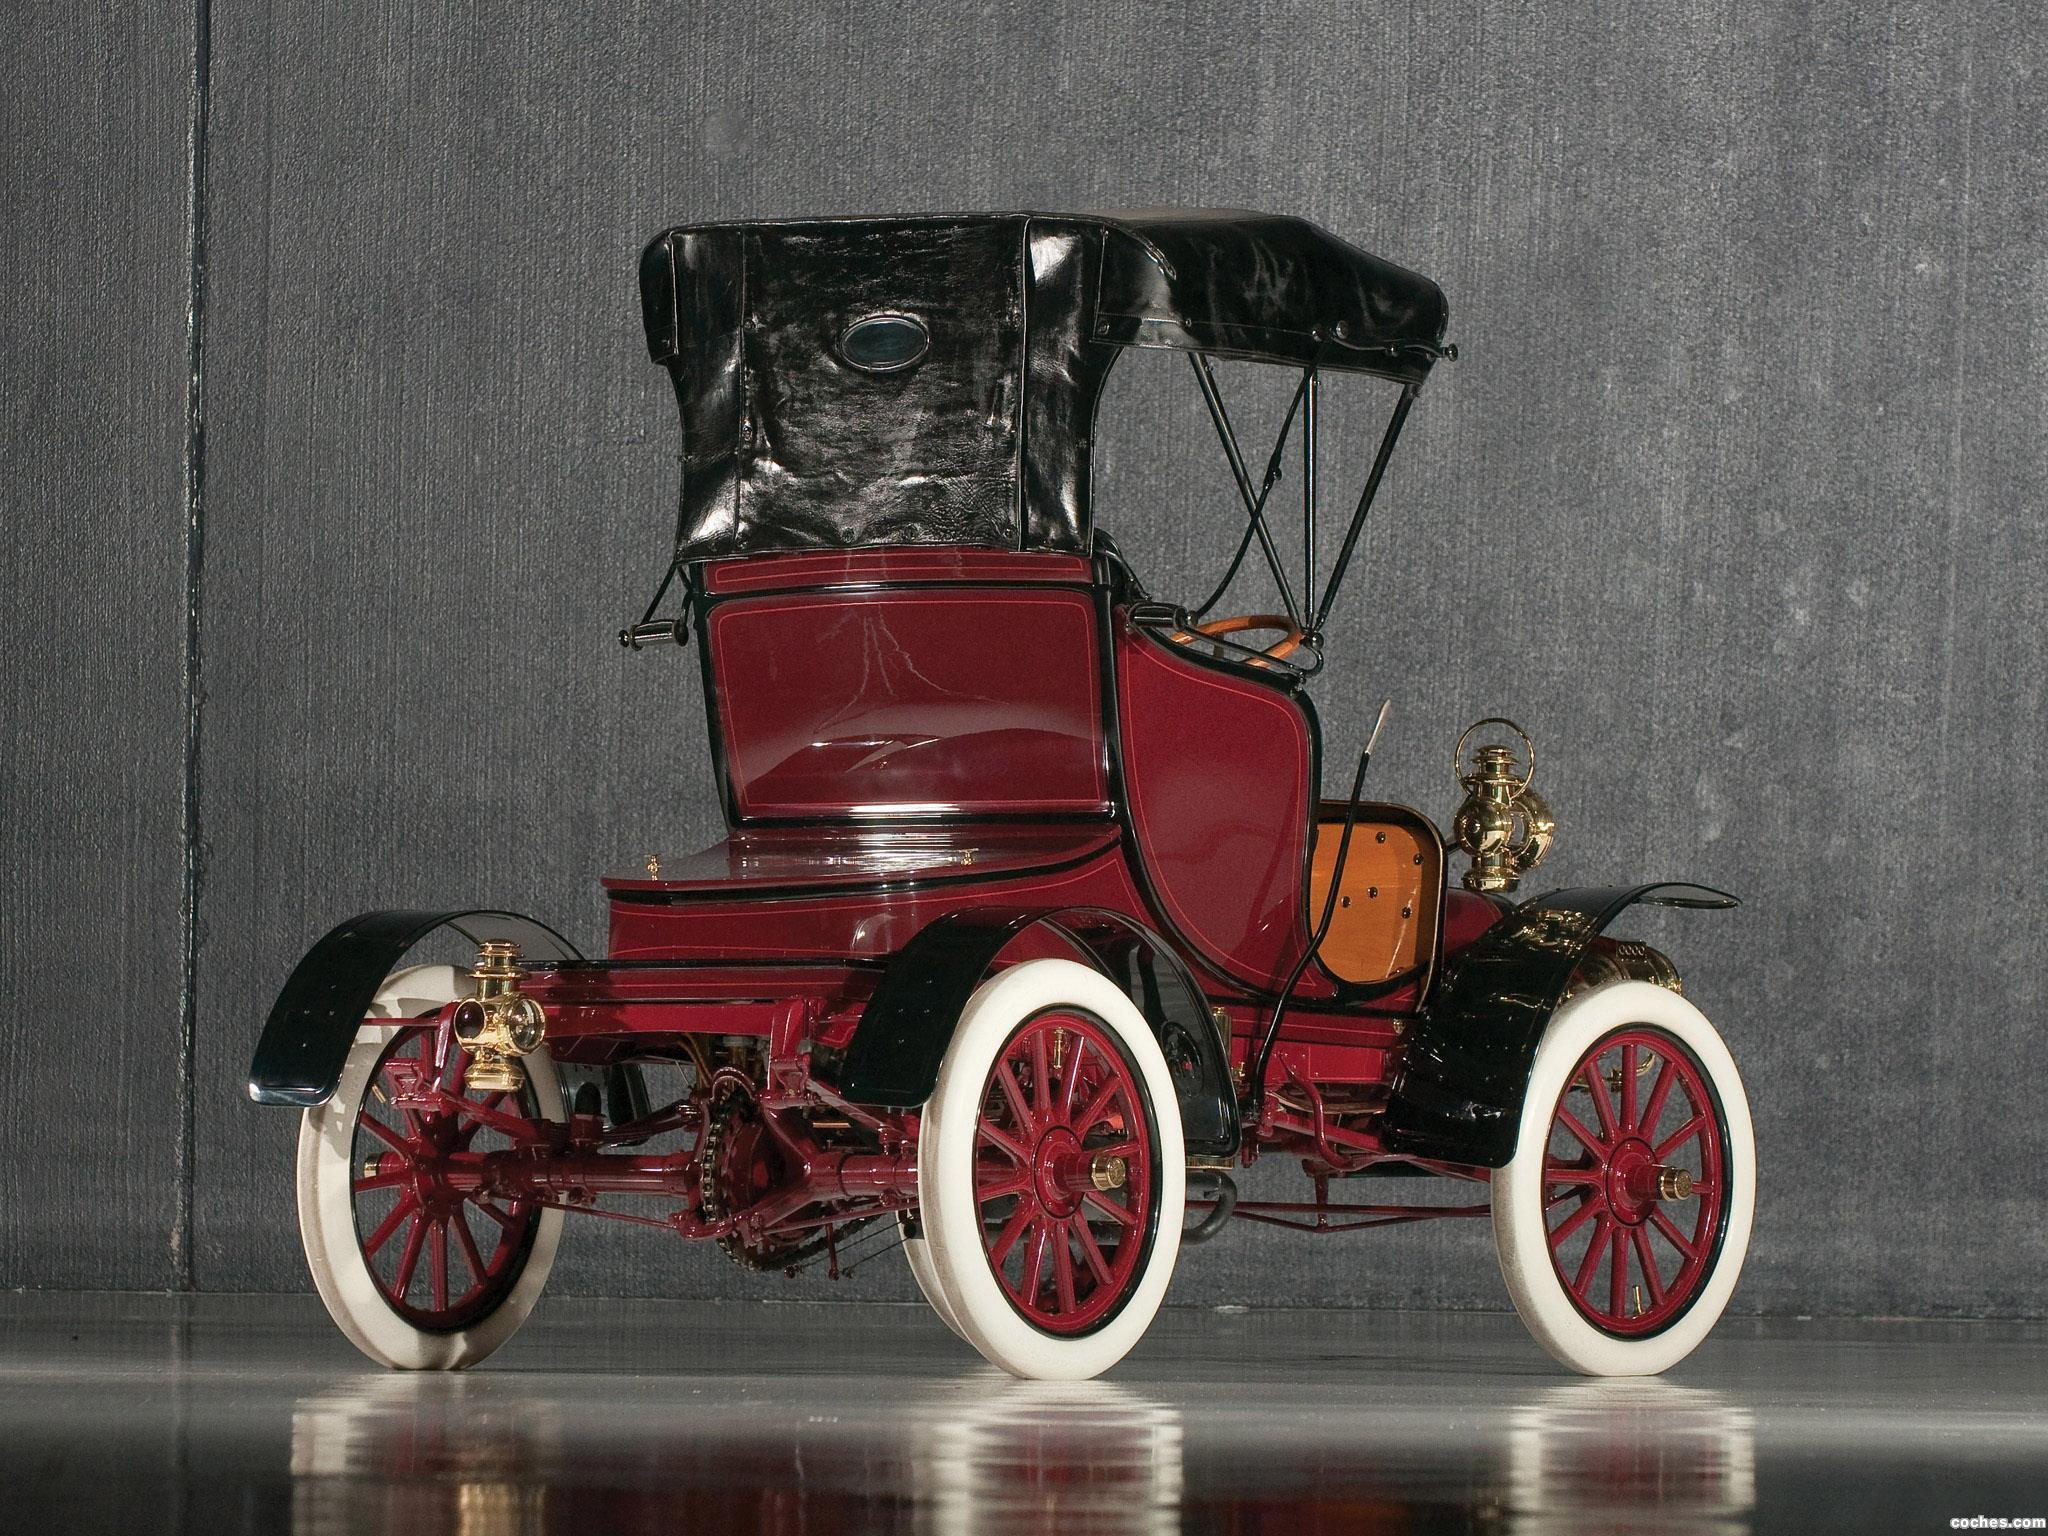 1906 Cadillac Model K: Fotos De Cadillac Model-K Light Runabout 1906